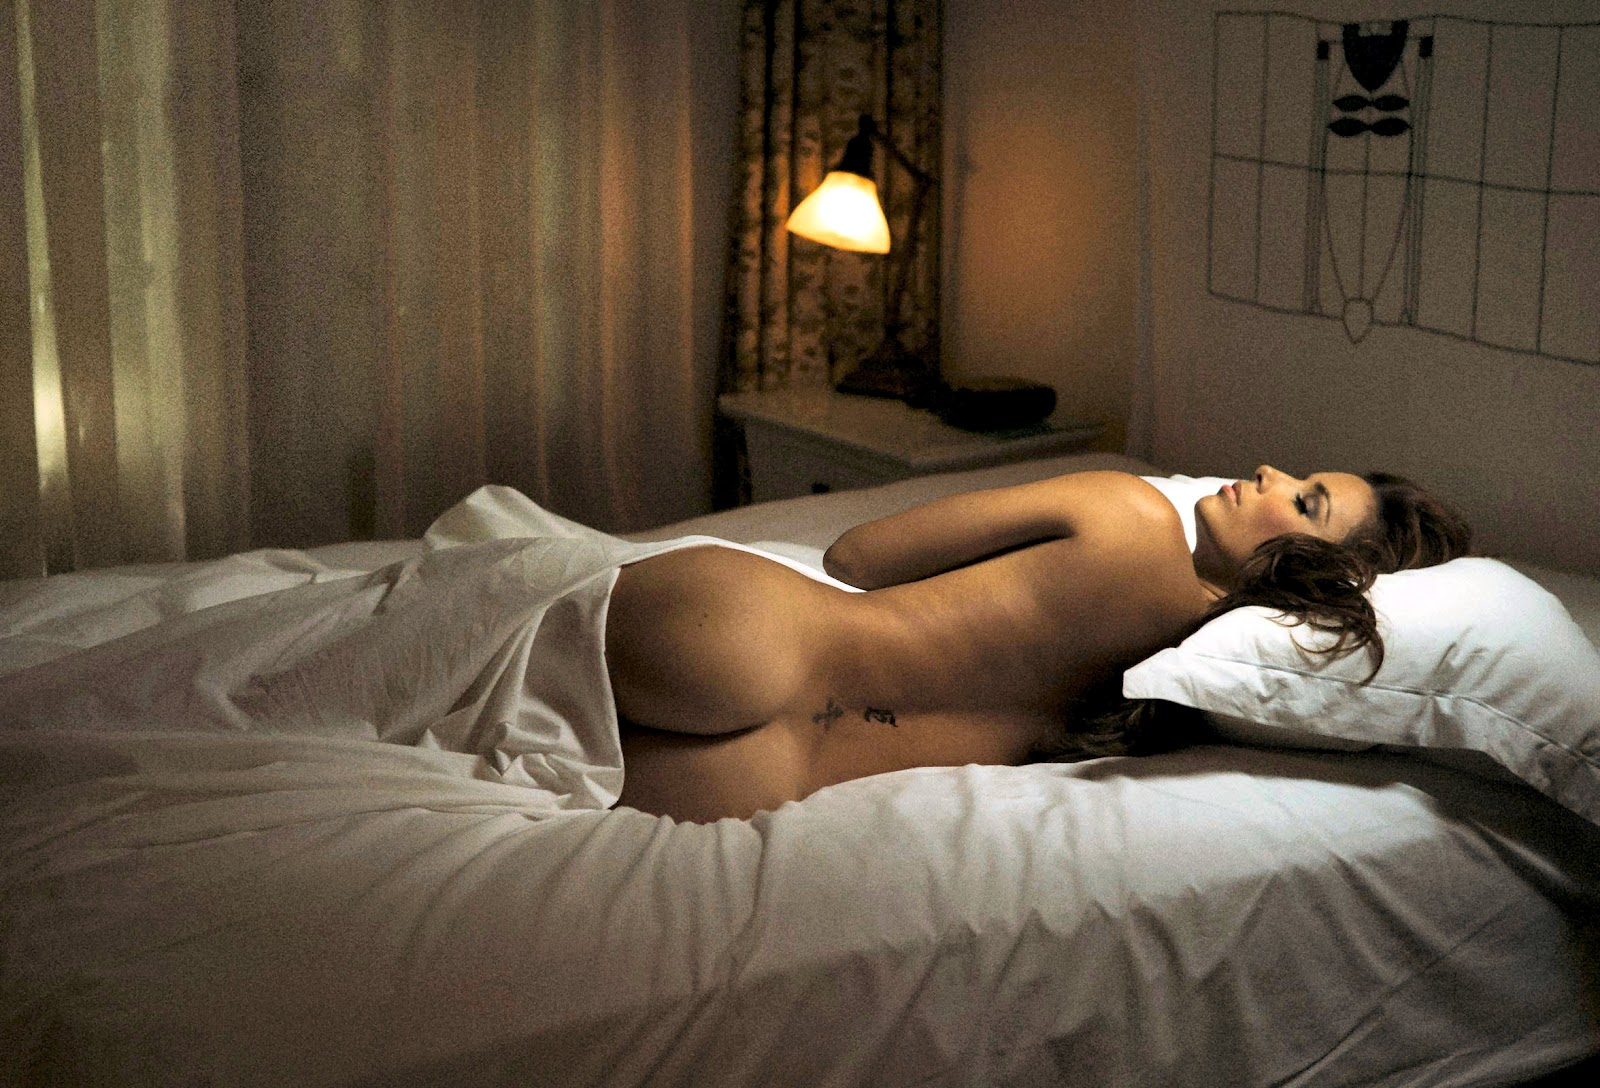 http://1.bp.blogspot.com/-6PsWKA0xxEk/UGGPiX3IfmI/AAAAAAAAQ54/PGHet2zojhY/s1600/eva-longoria-nude-in-bed-from-jork-weismanns-book-asleep-at-the-chateau-1.jpg